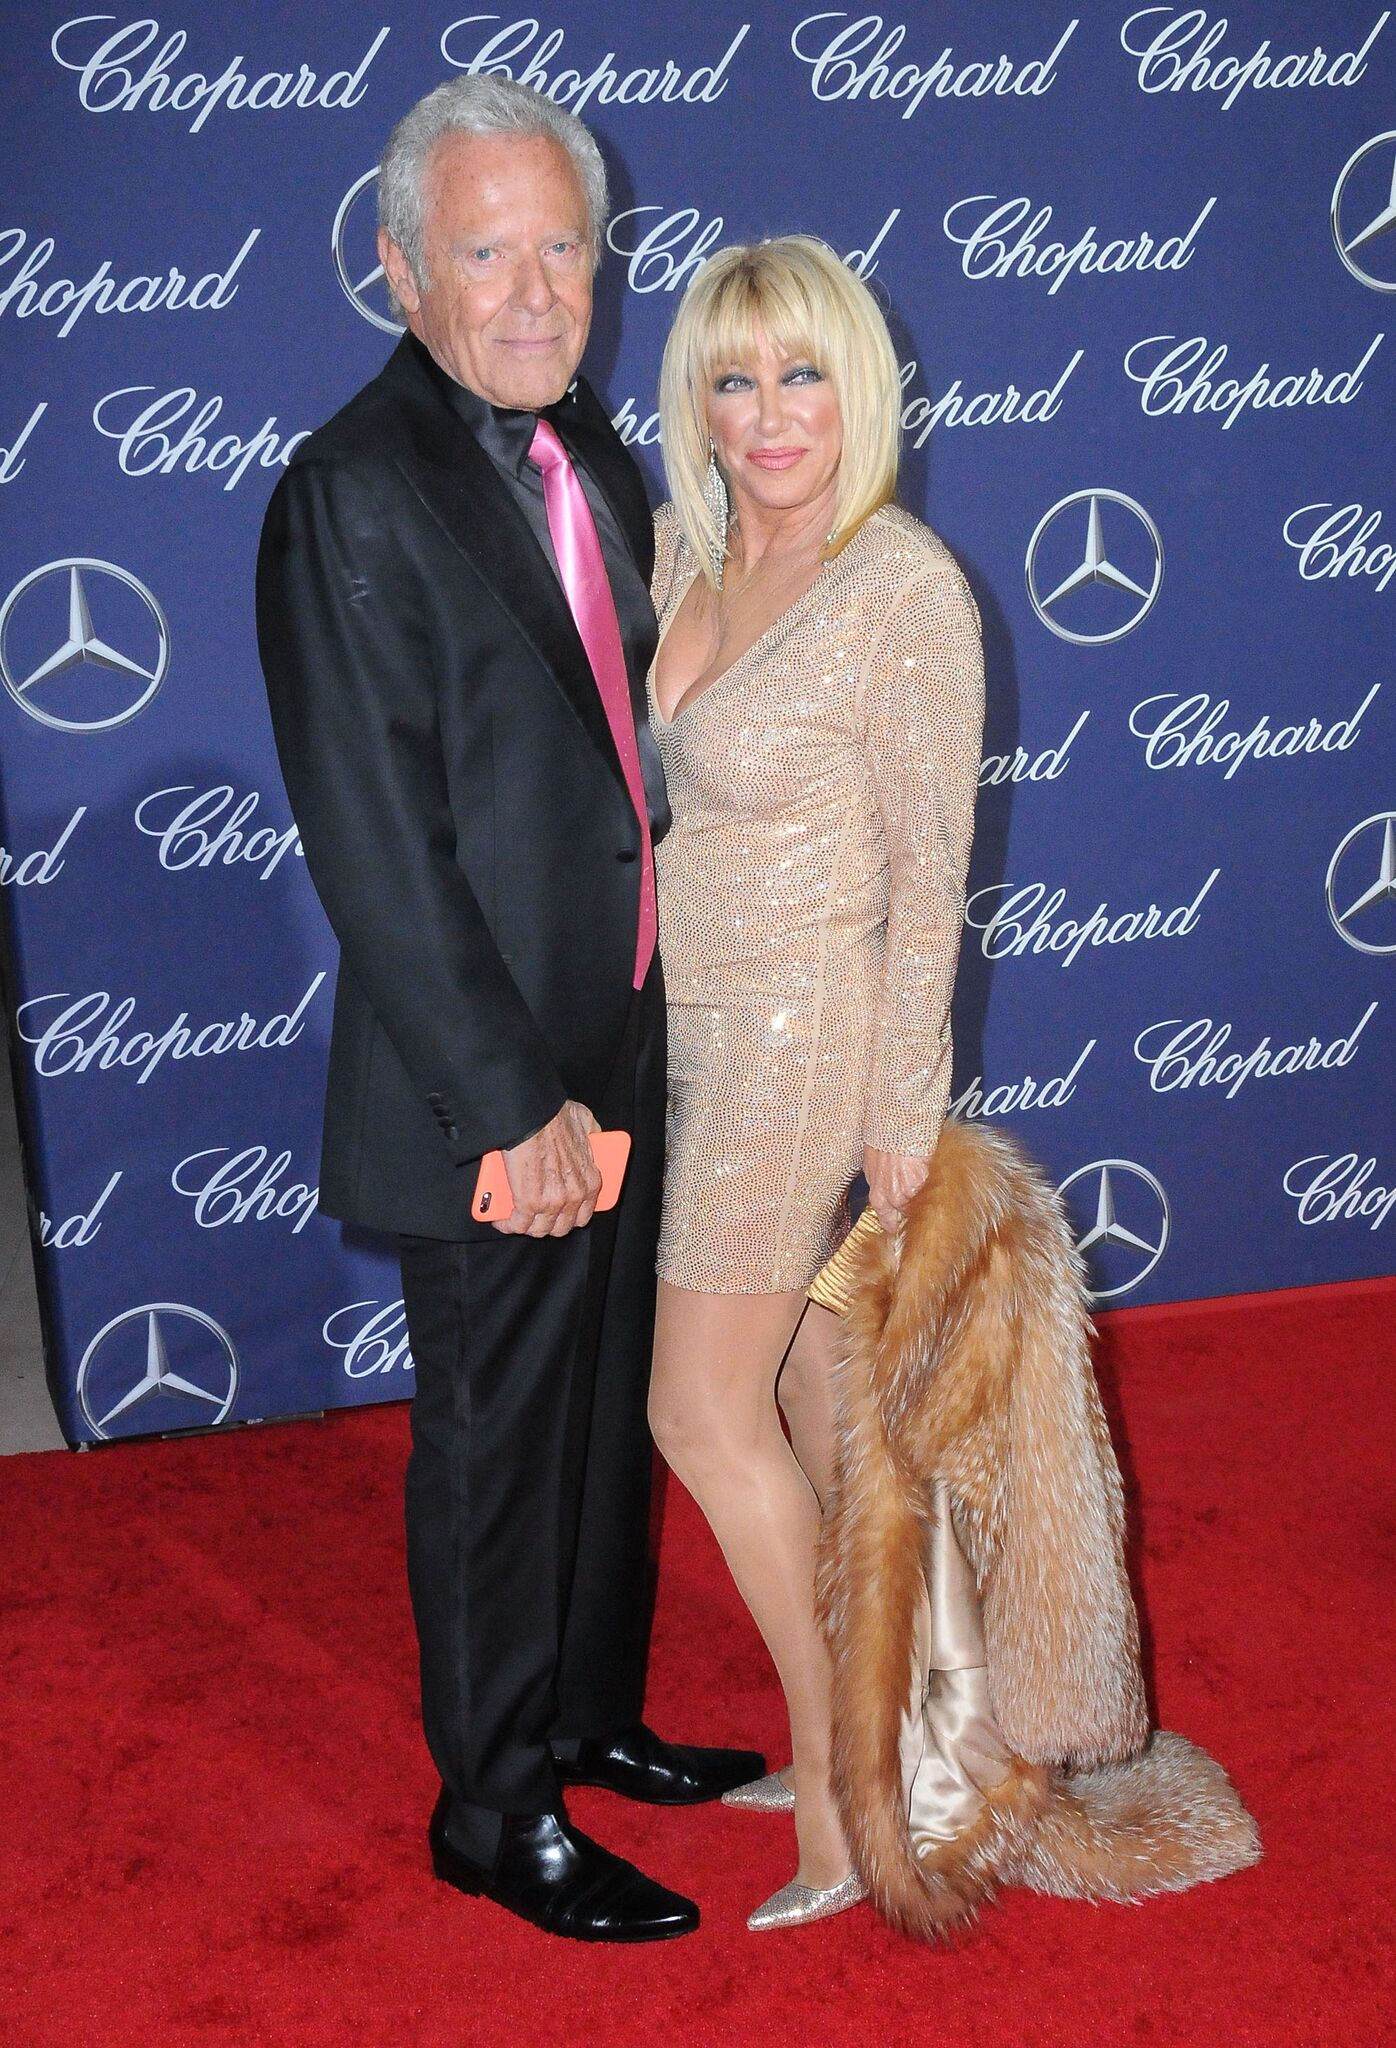 Suzanne Somers (R) and husband Alan Hamel (L) attend the 28th Annual Palm Springs International Film Festival Film Awards Gala  | Getty Images